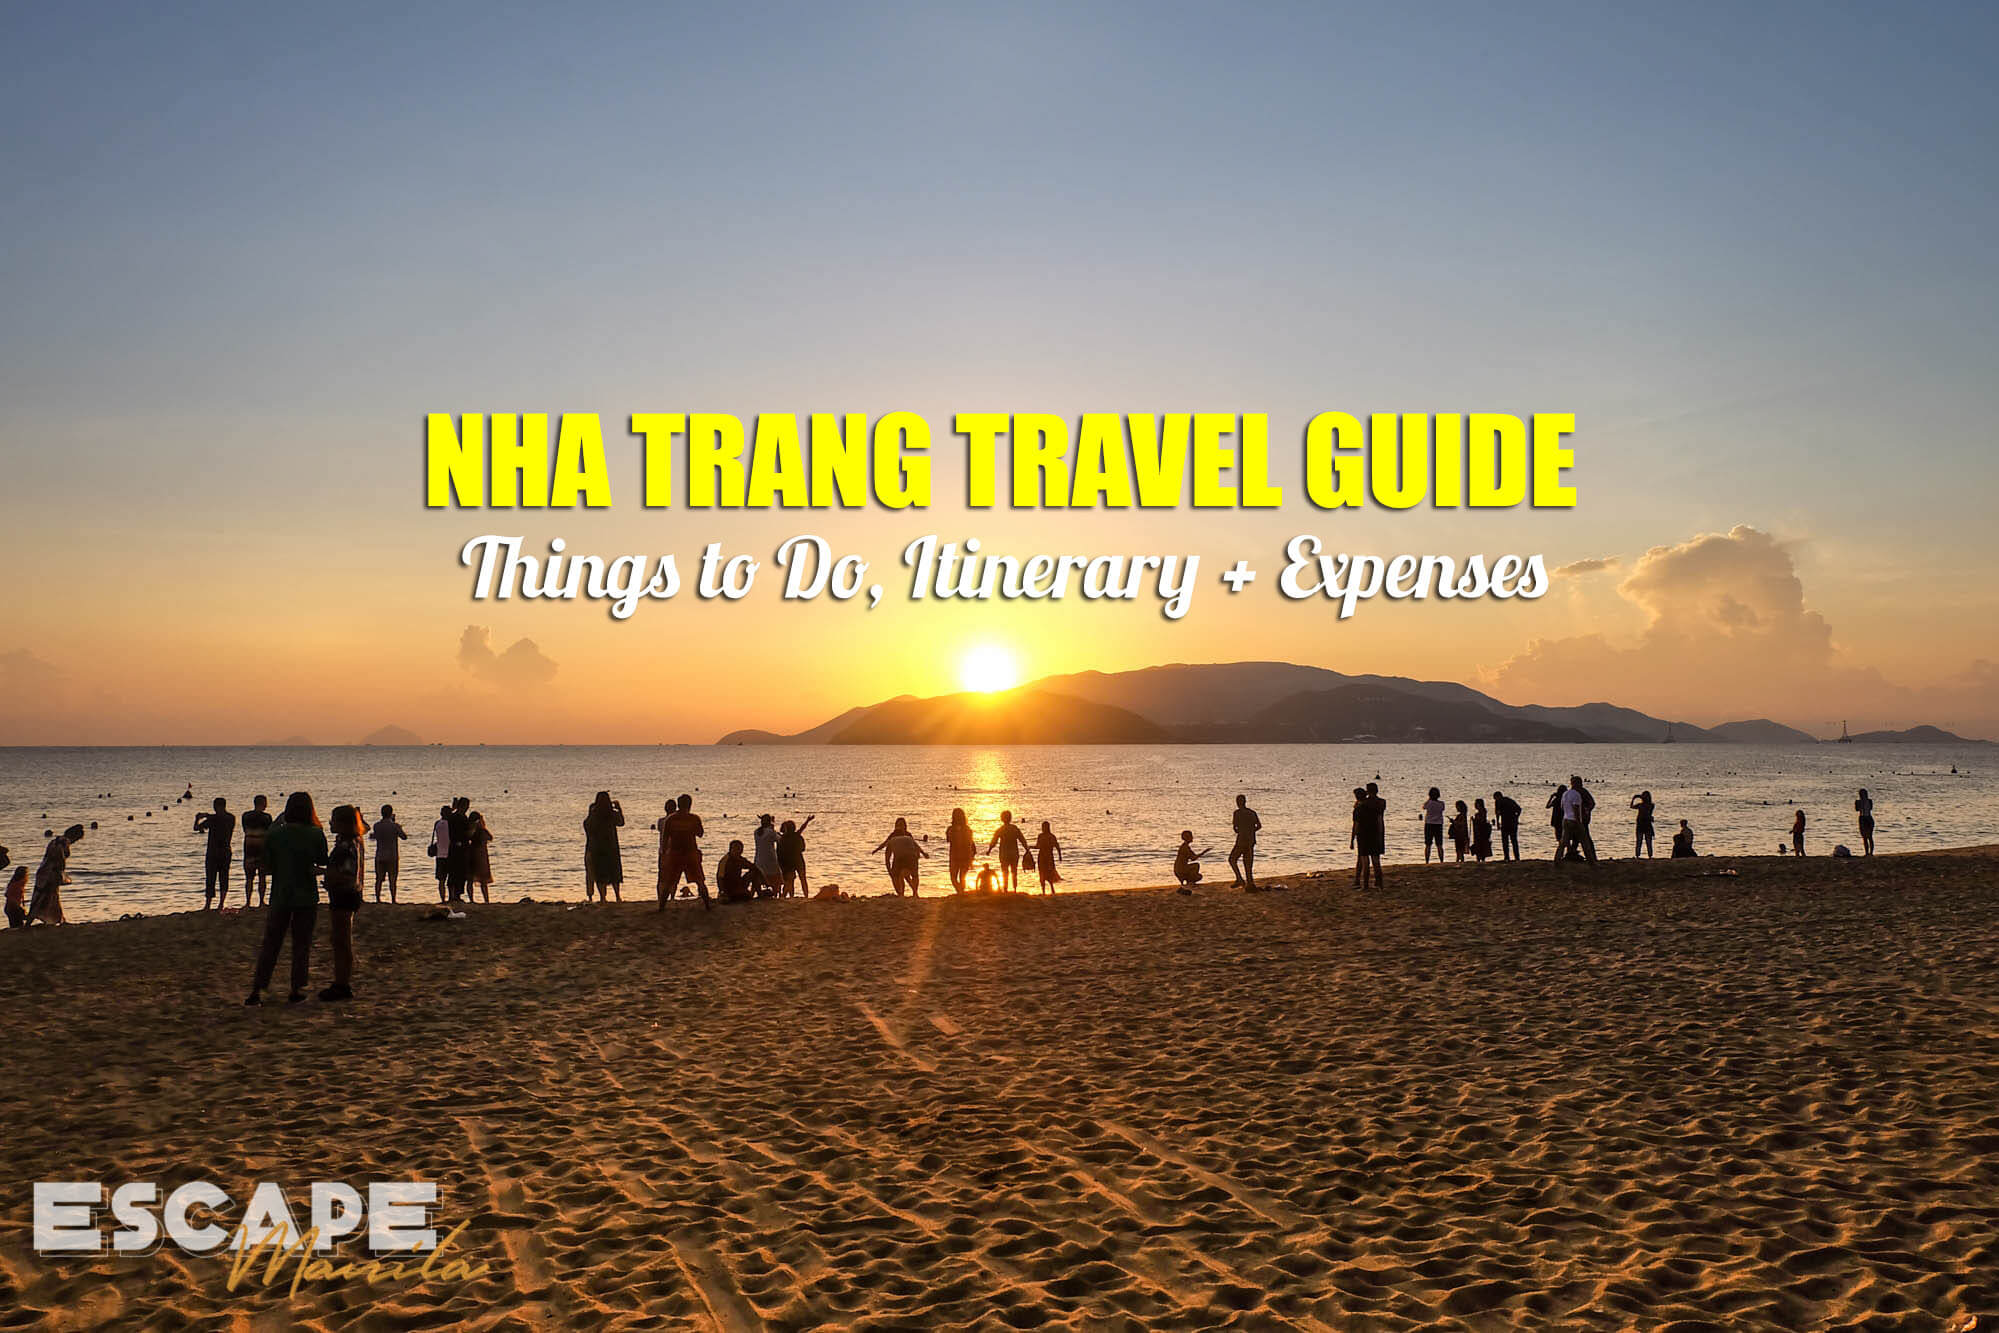 Nha Trang Travel Guide Blog: Things to Do, Itinerary + Expenses